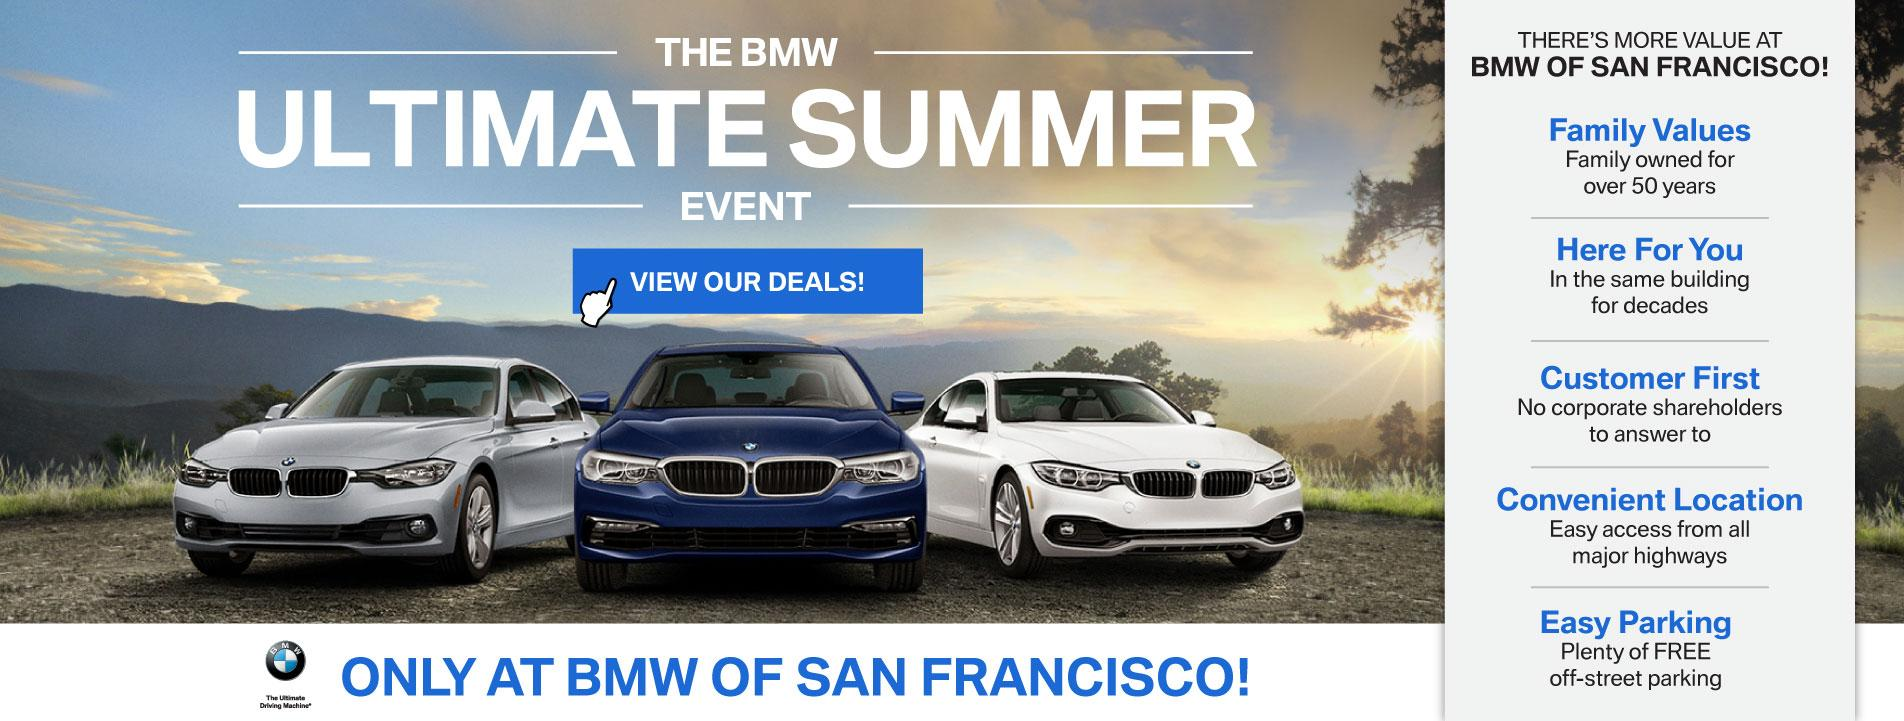 BMW Ultimate Summer Sales Event